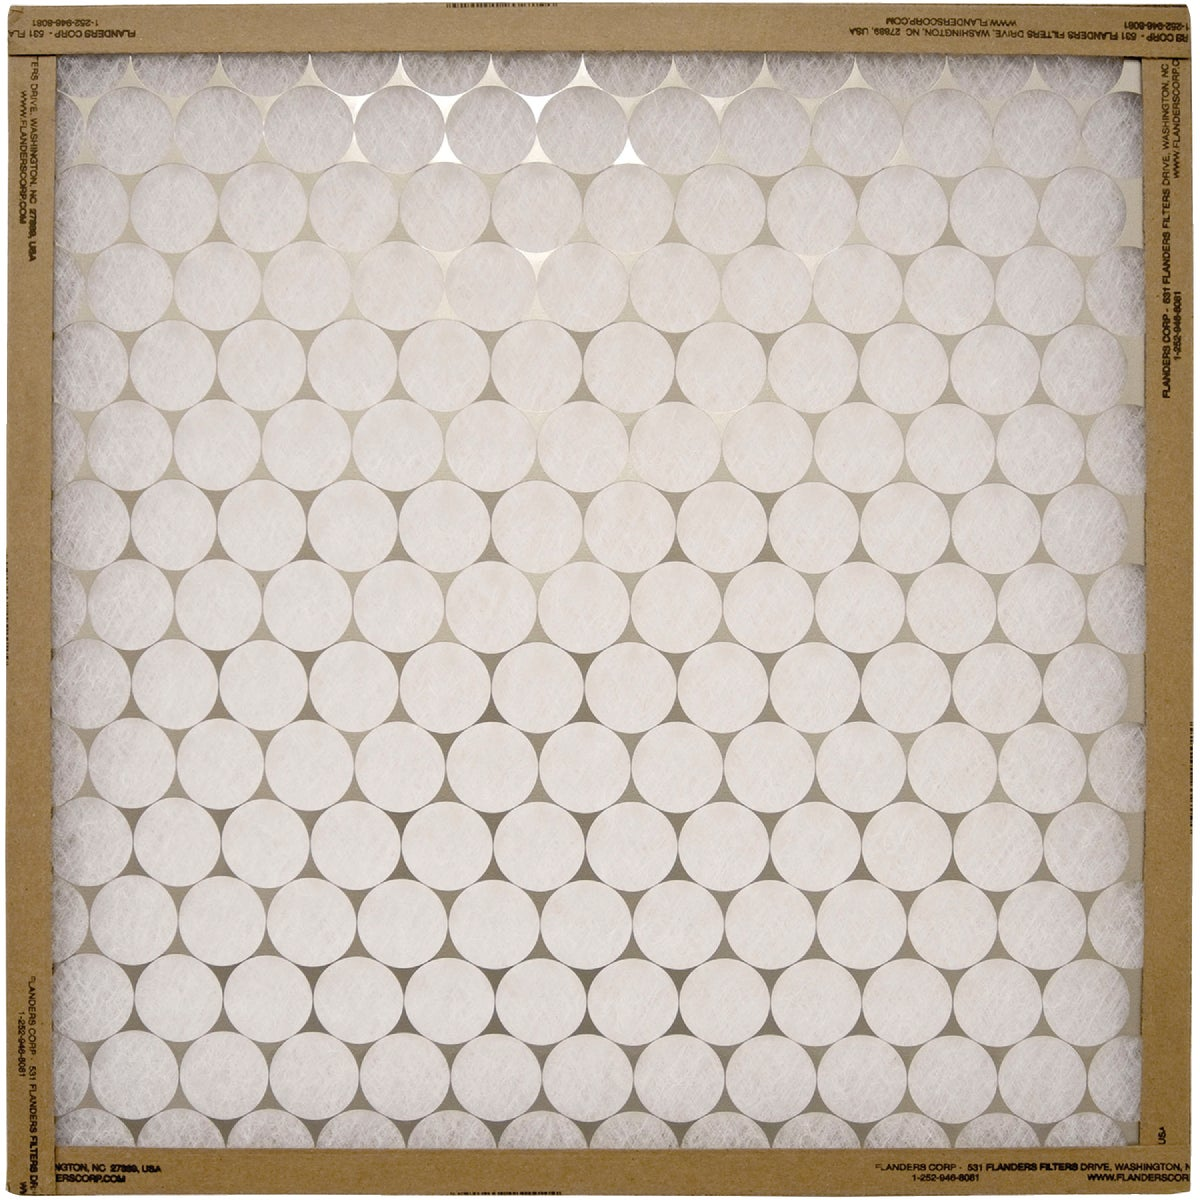 16X20 FURNACE FILTER - 10255.011620 by Flanders Corp